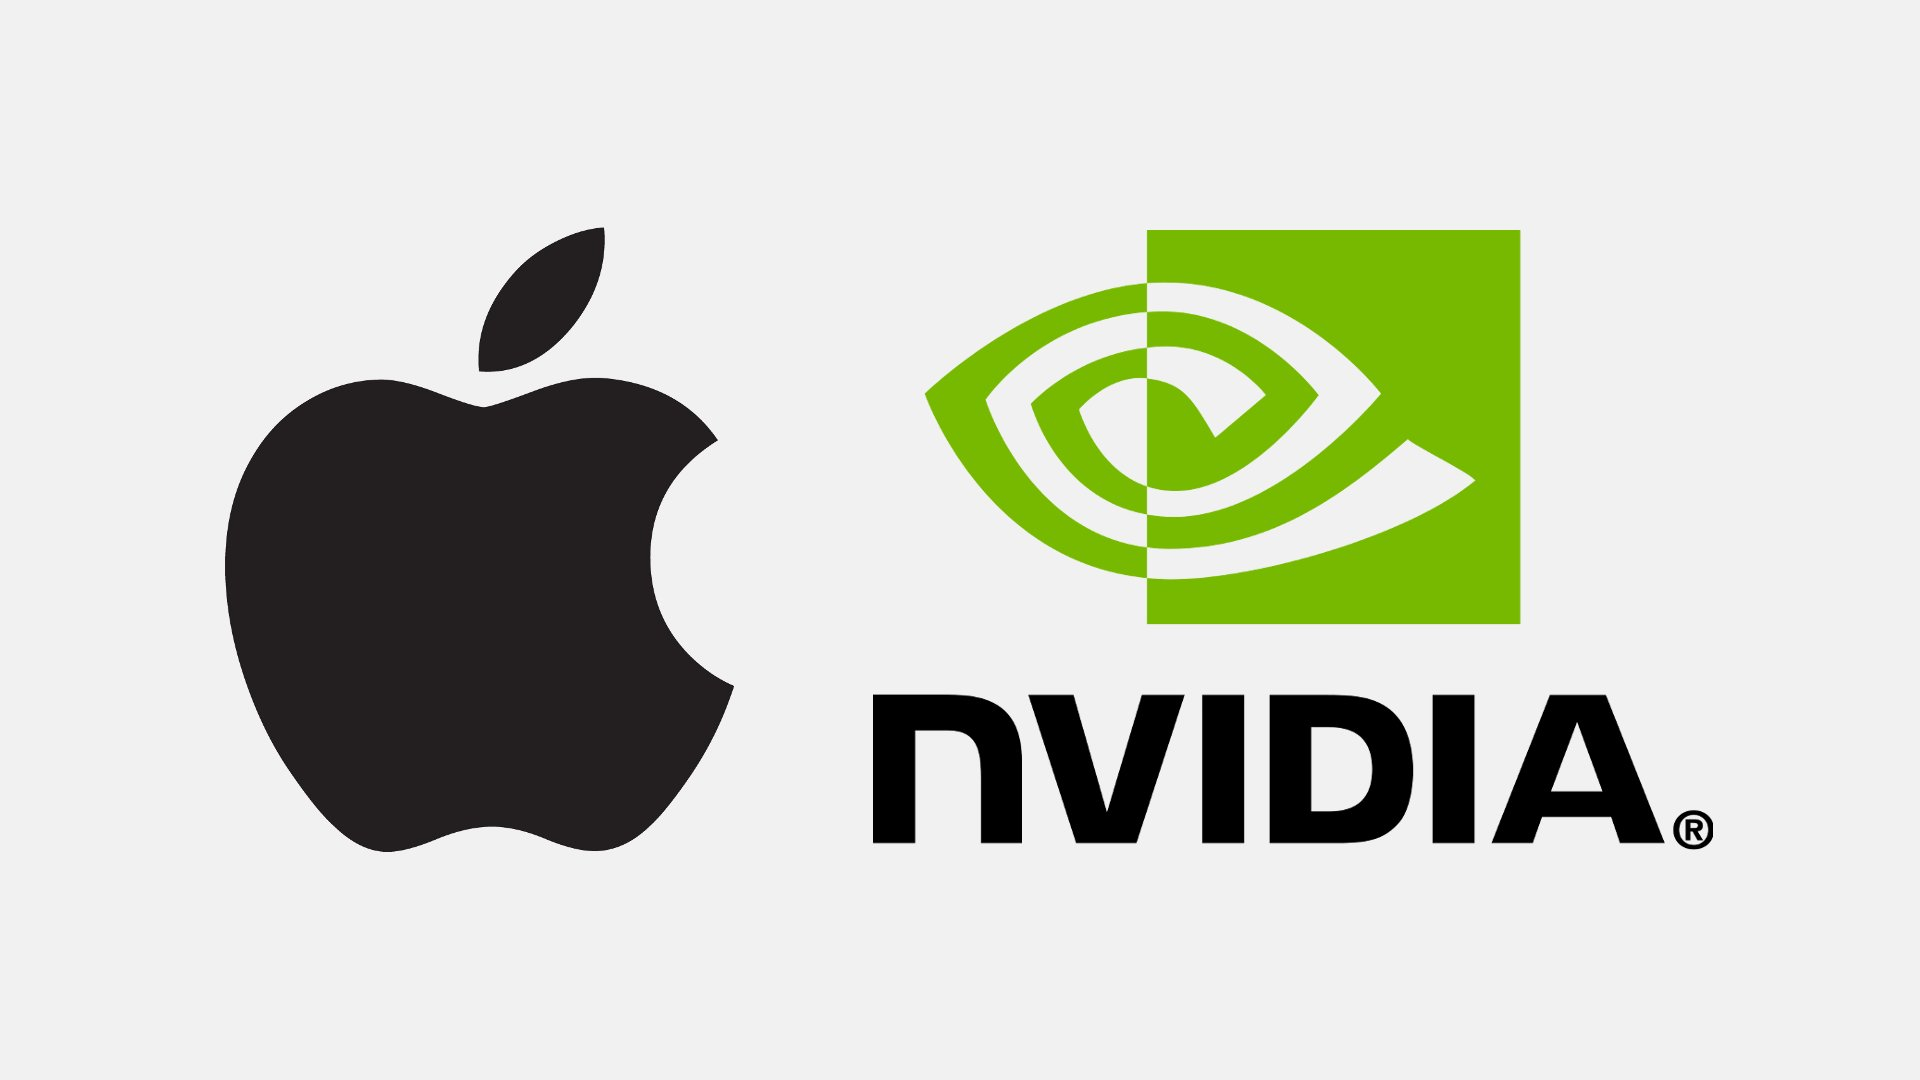 this application is not rated by nvidia